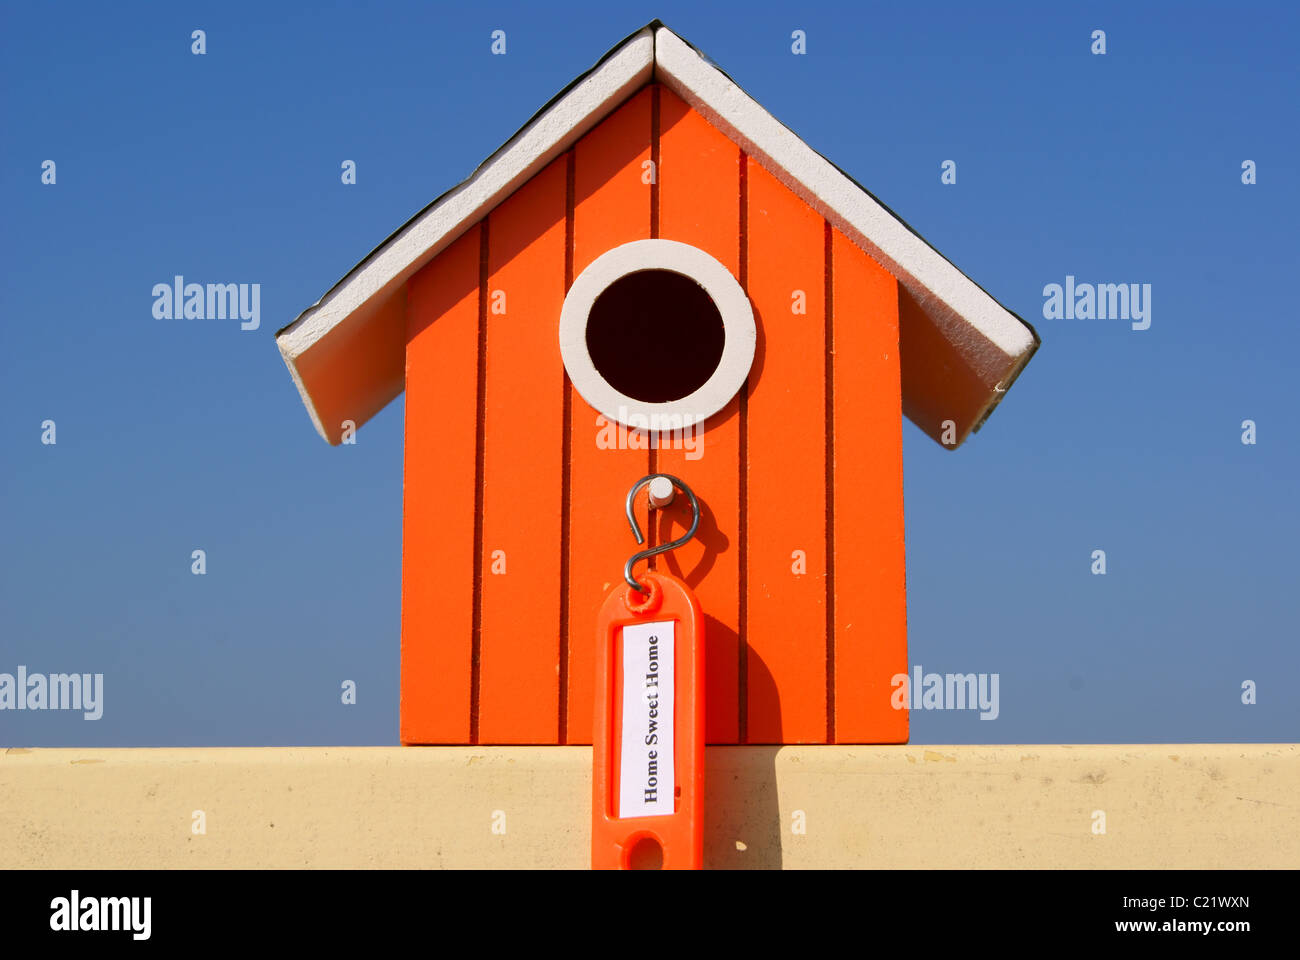 Home Sweet Home with label - Stock Image